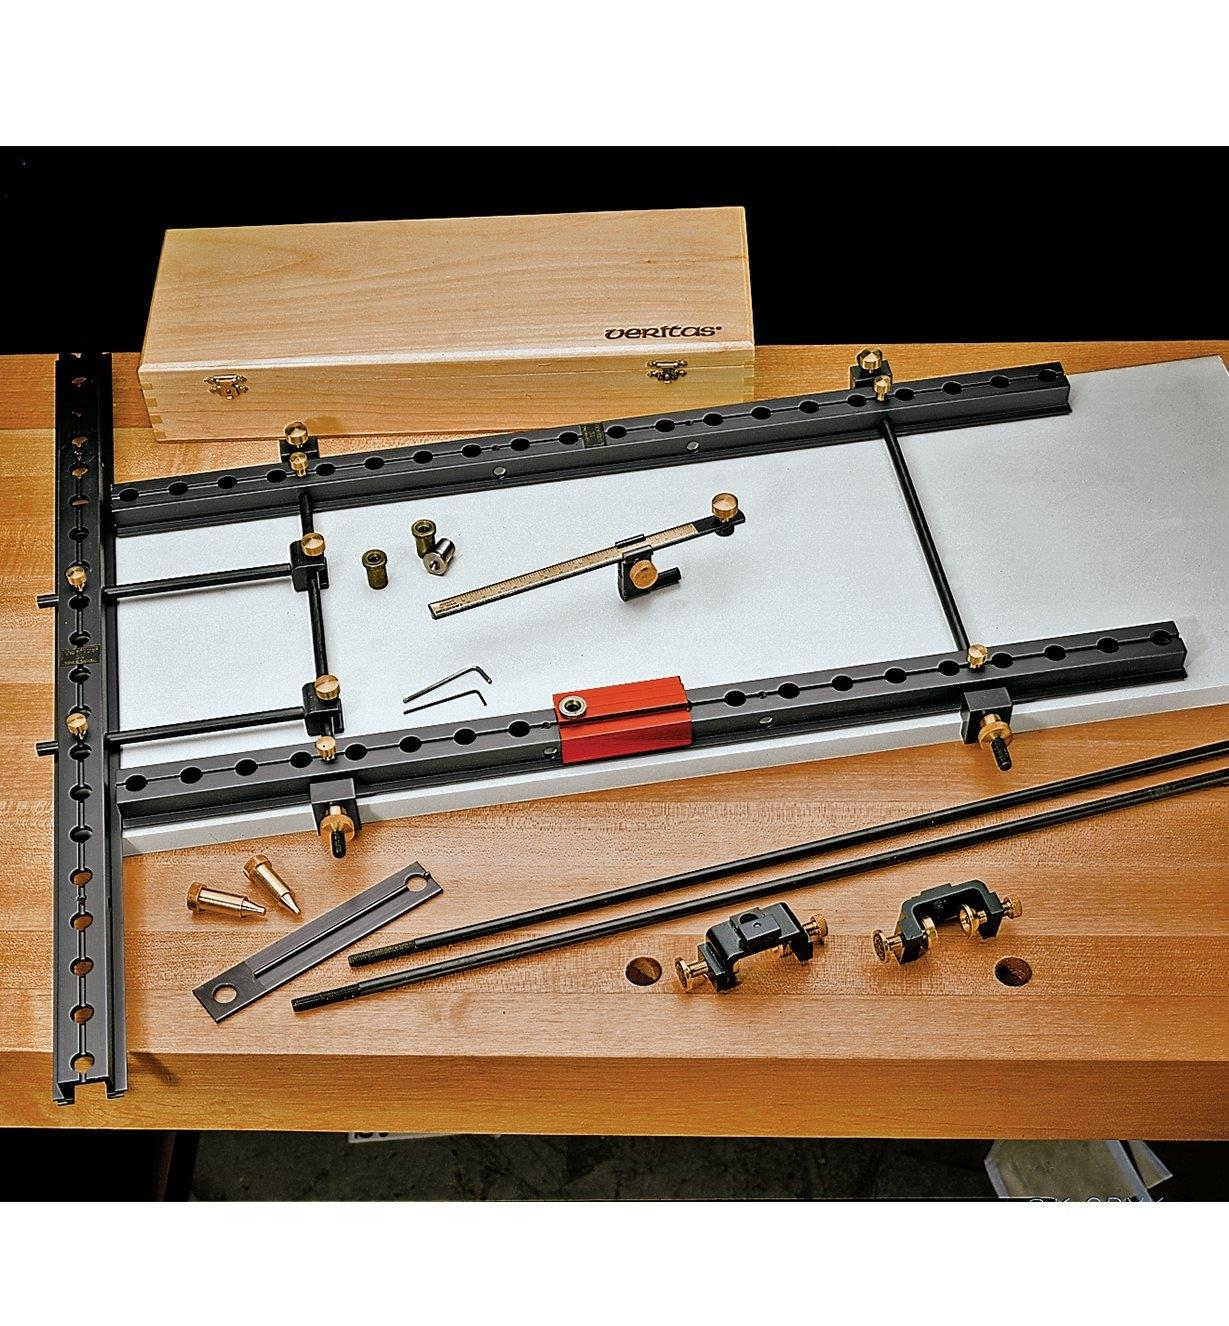 Components for the Veritas 32 Cabinetmaking System